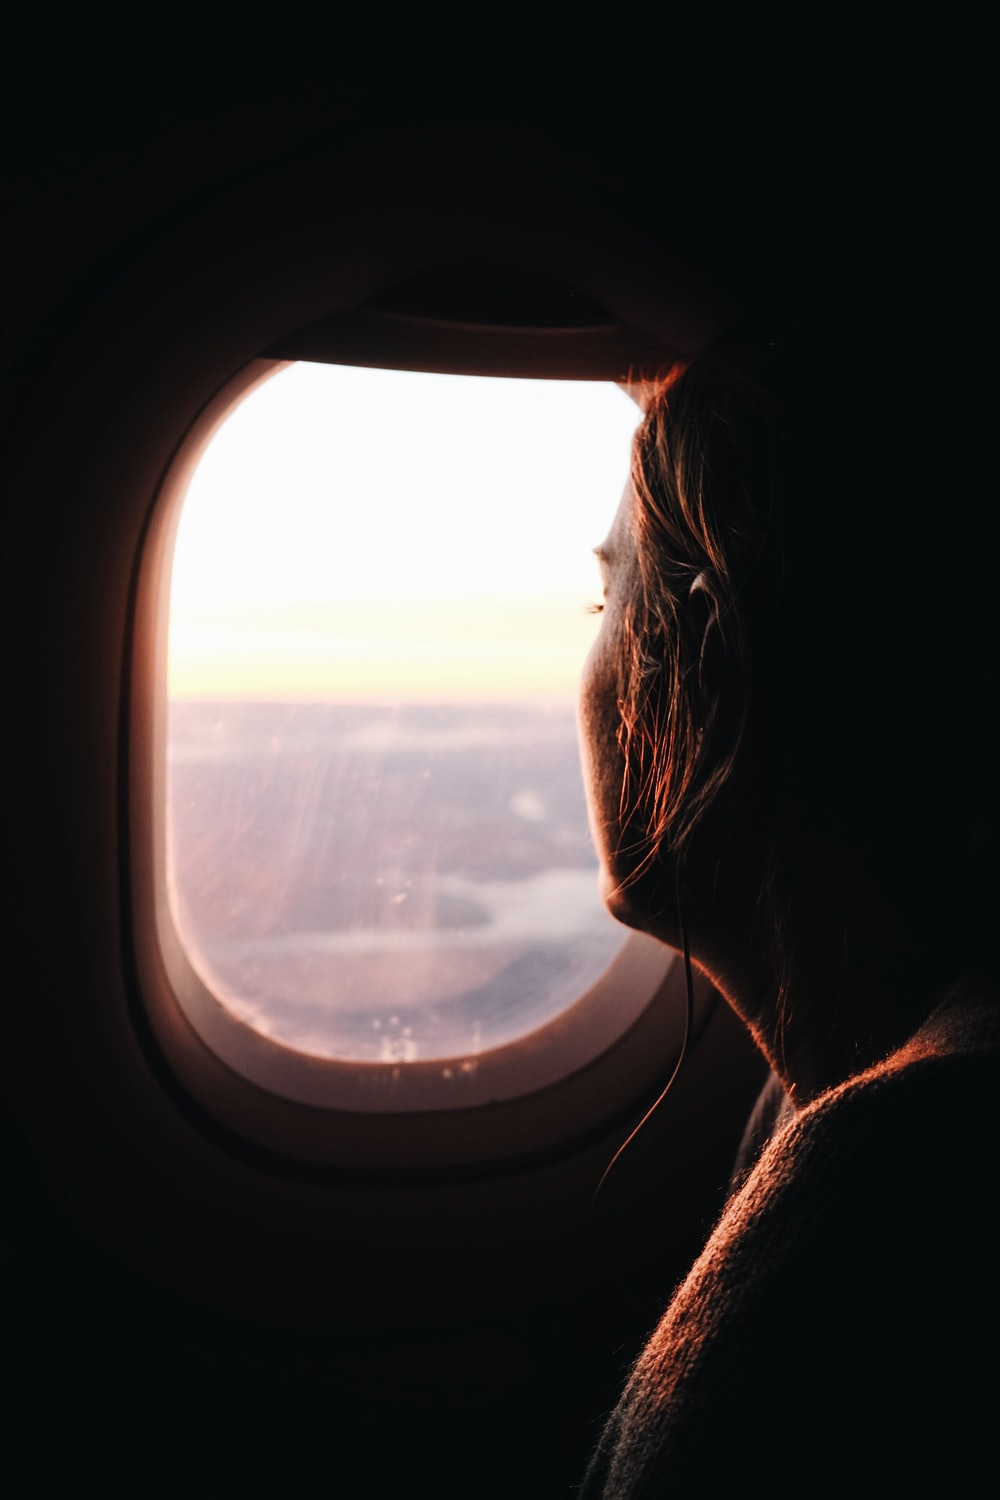 Woman With Short Hair Peering From Out Of Airplane Window To Sunset Over Sao Paulo